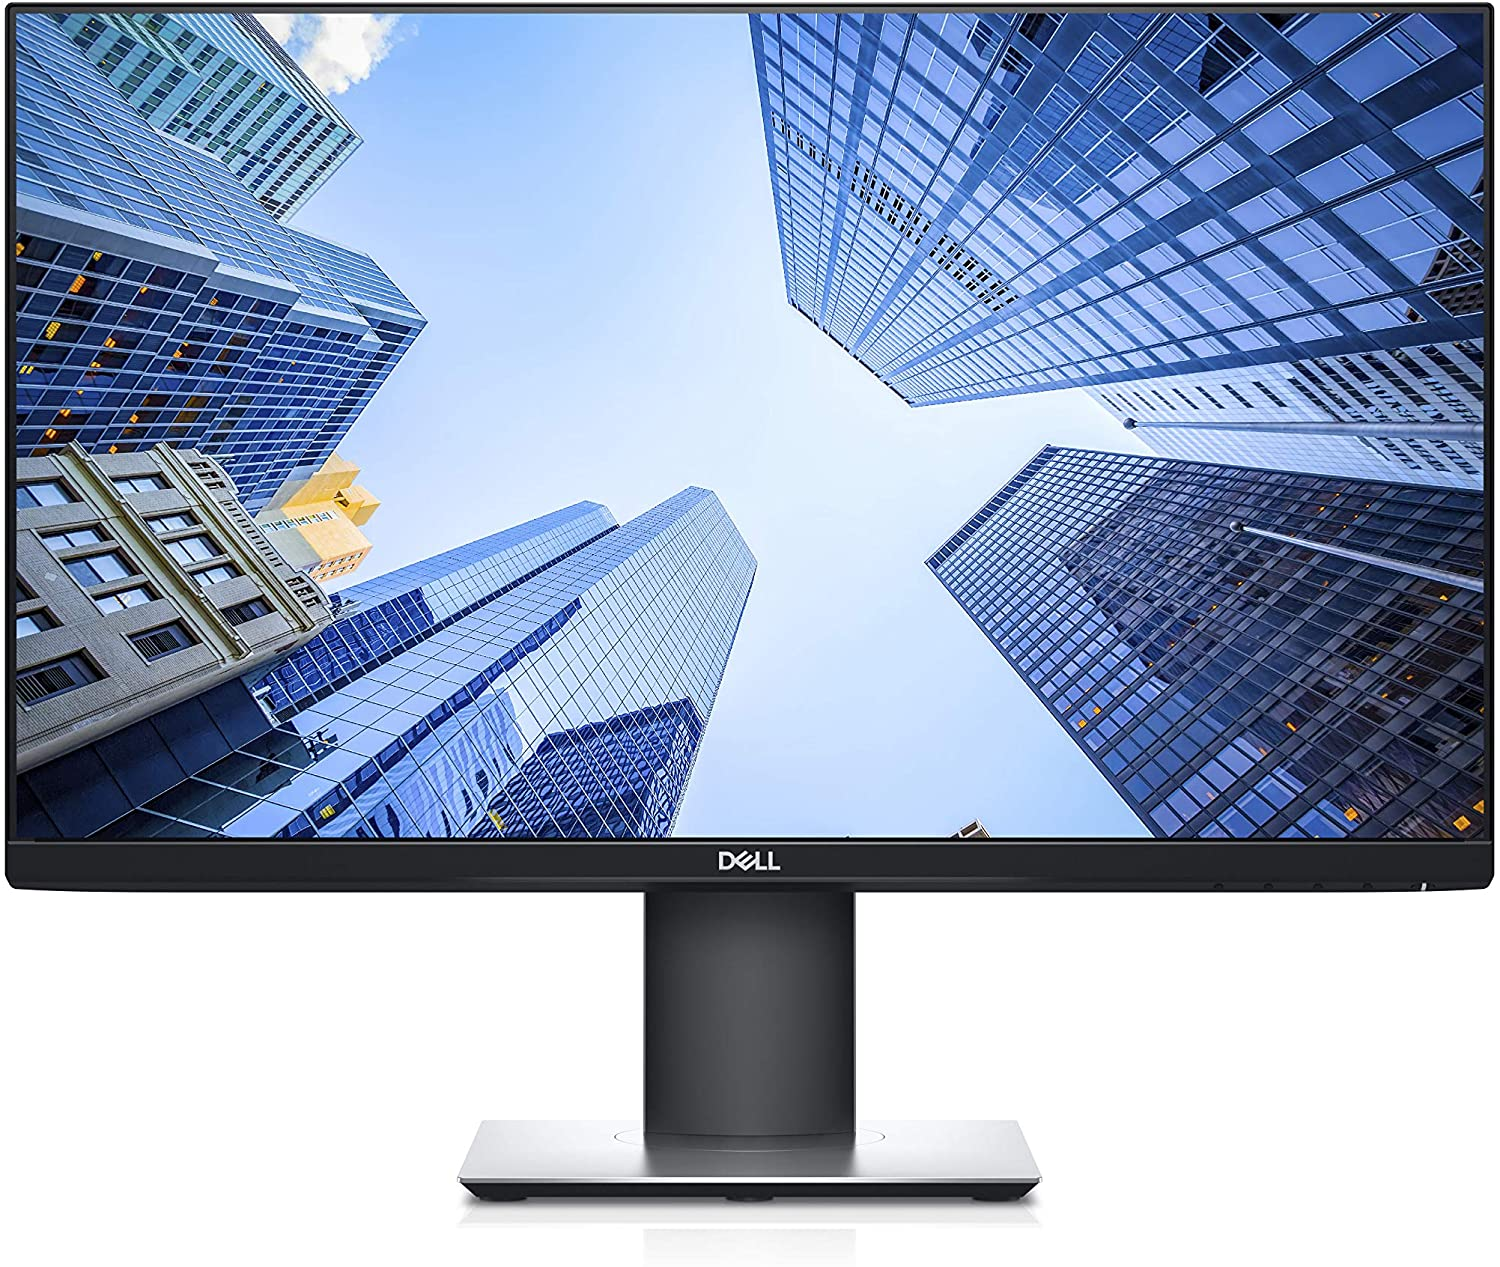 """Dell P2419H 23.8"""" IPS WLED Monitor"""